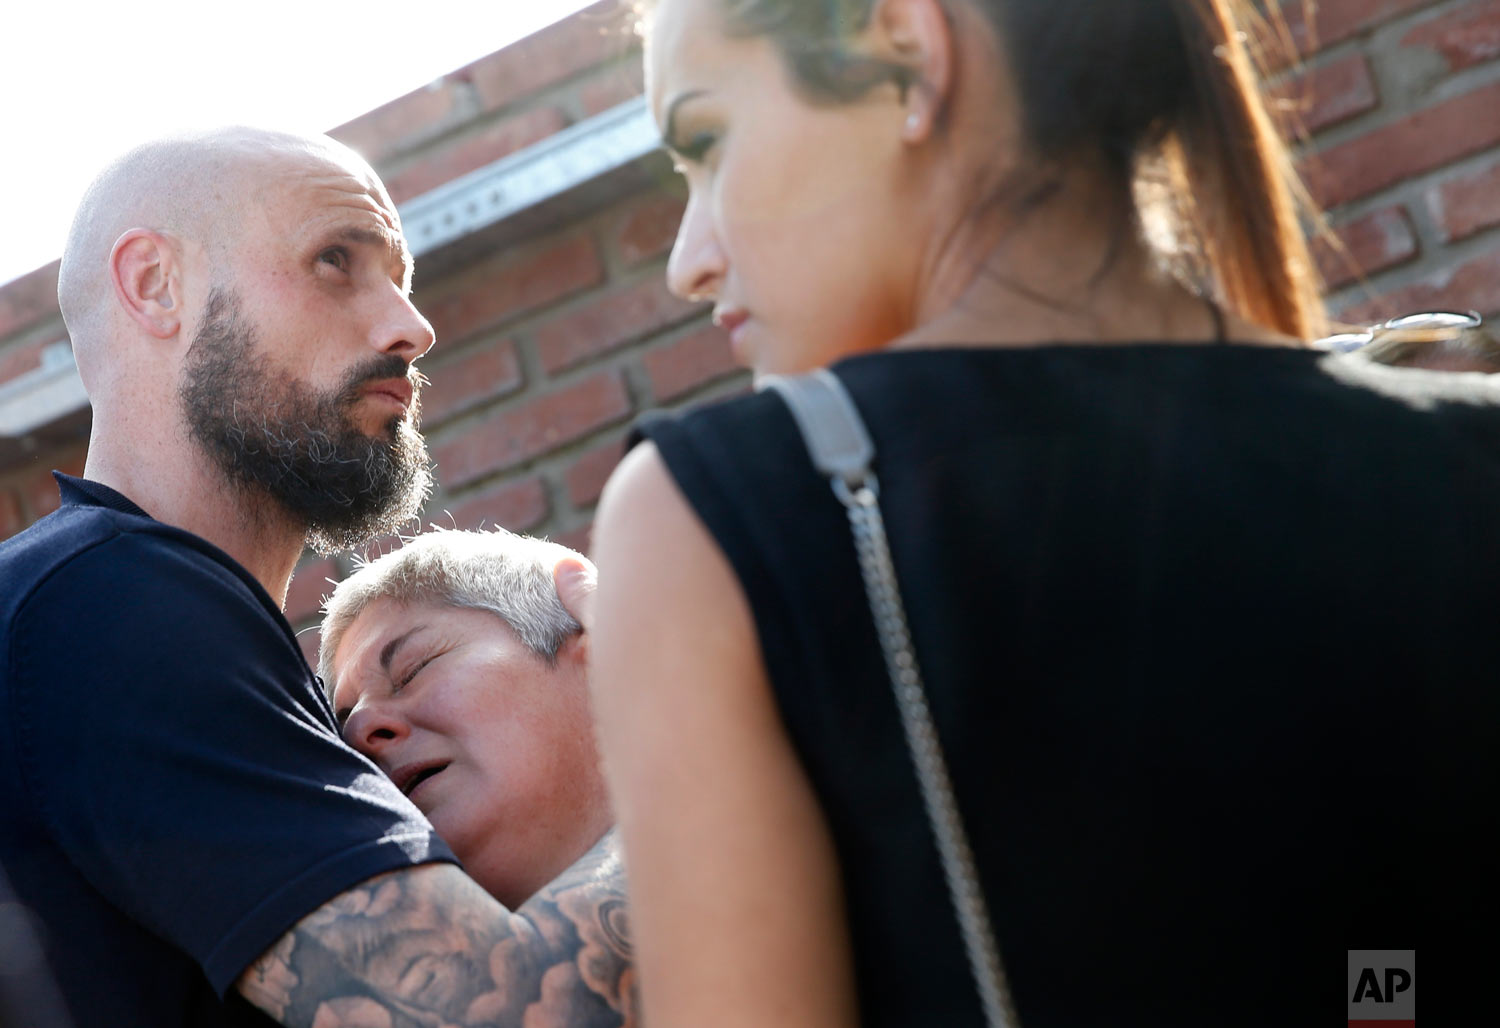 Mercedes Taffarel, mother of Argentine soccer player Emiliano Sala, is comfort by Nantes defender Nicolas Pallois during Sala's burial service at the cemetery in Santa Fe, Argentina, Feb. 16, 2019. (AP Photo/Natacha Pisarenko)